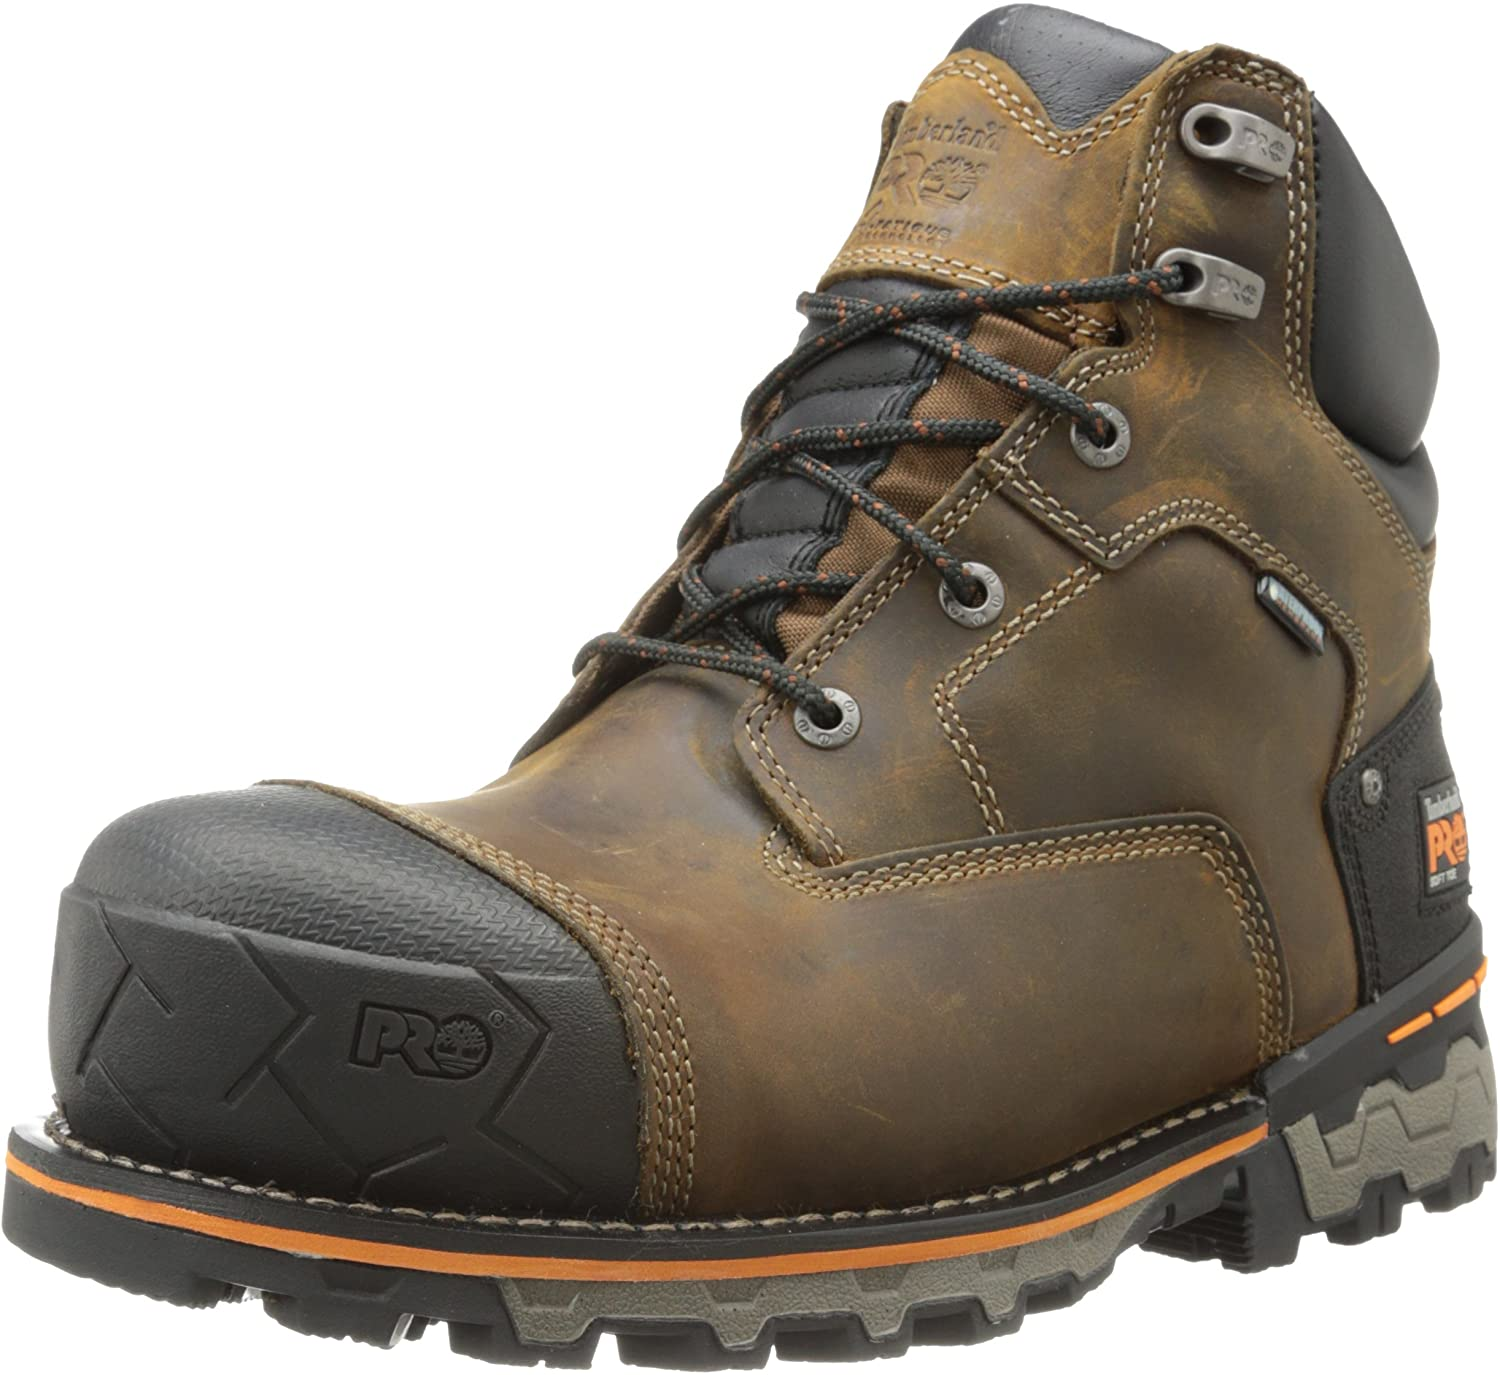 Timberland PRO Men's 6 Inch Boondock Soft Toe WP Industrial Industrial Industrial Work Stiefel,braun Oiled Distressed Leather,7.5 W US B00HNO7Z5Y  Berühmter Laden 3aee13